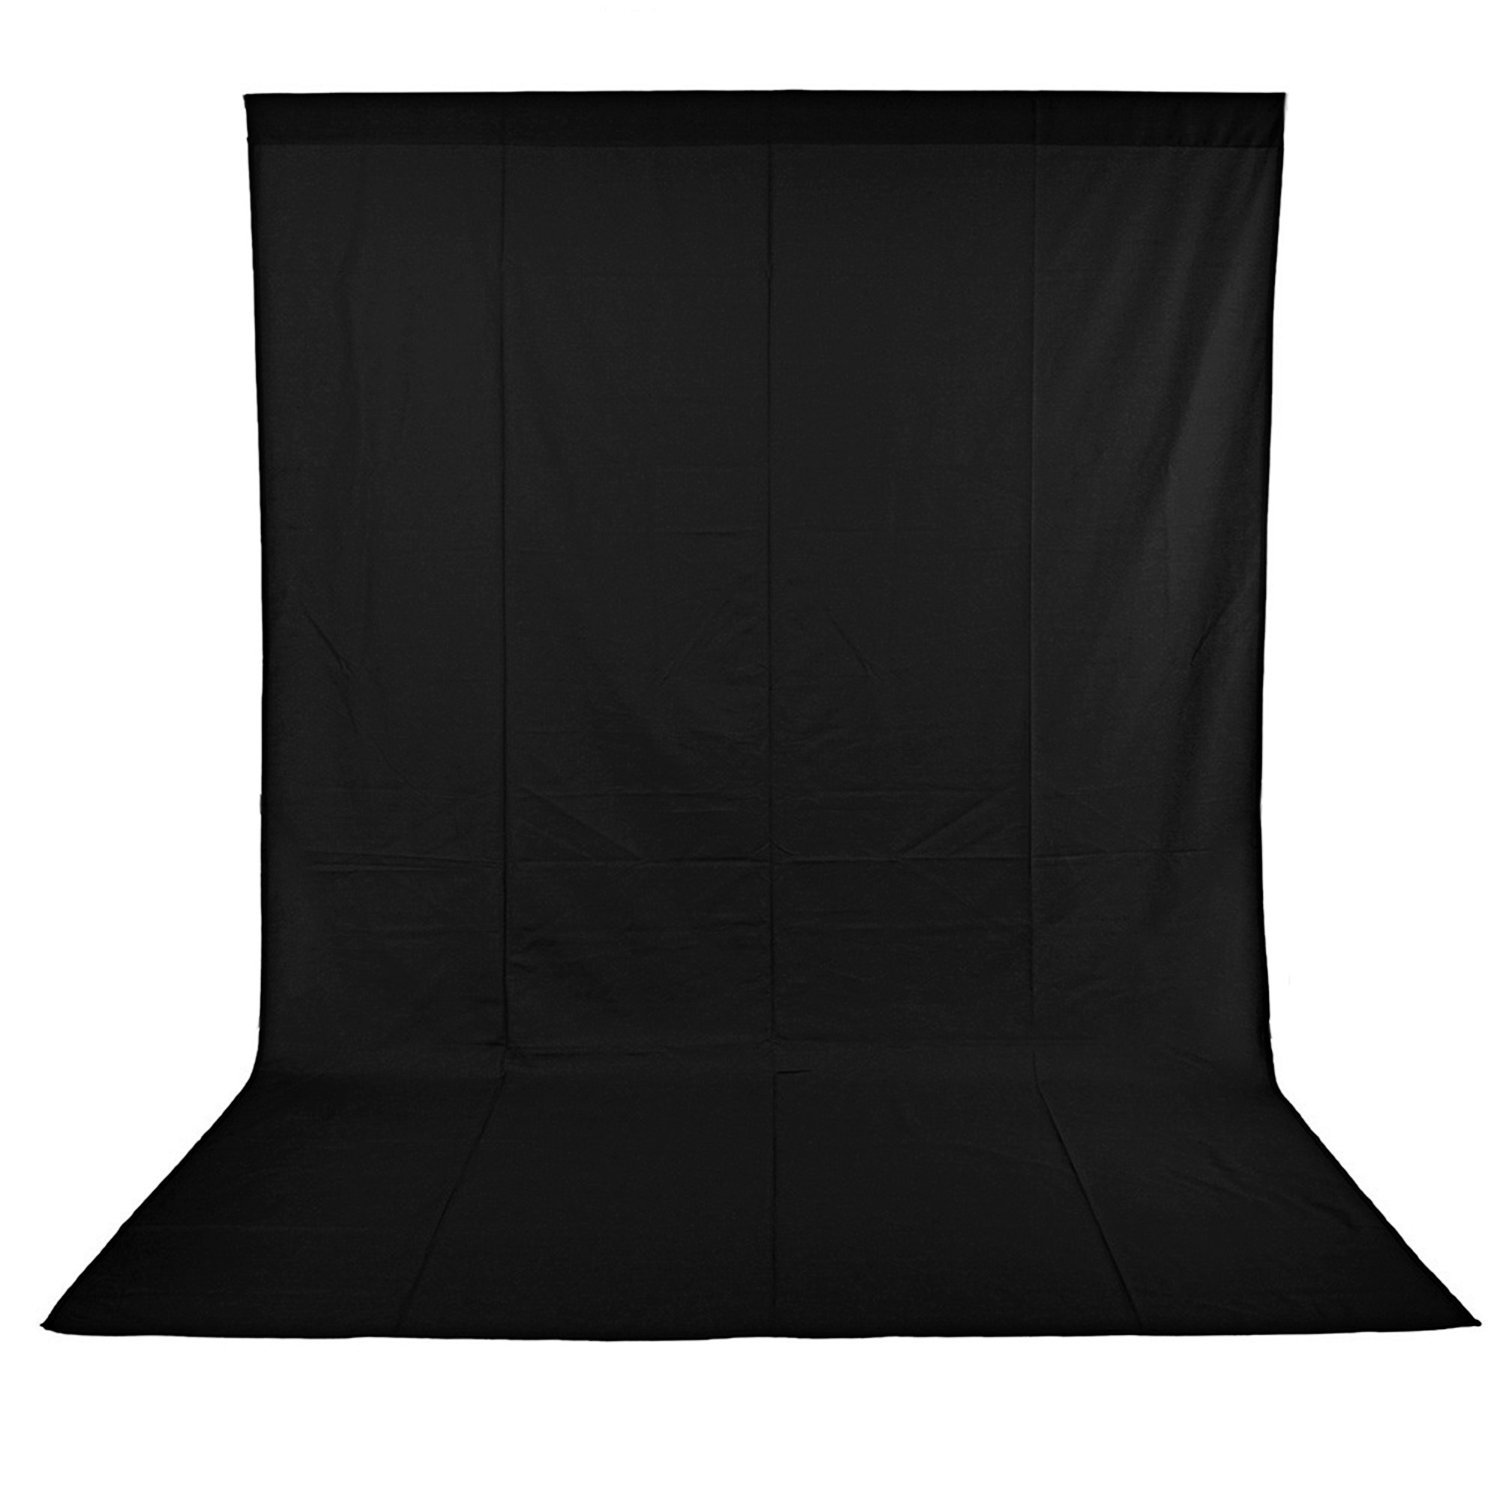 Neewer 10 x 12FT / 3 x 3.6M PRO Photo Studio 100% Pure Muslin Collapsible Backdrop Background for Photography,Video and Televison (Background ONLY) - BLACK by Neewer